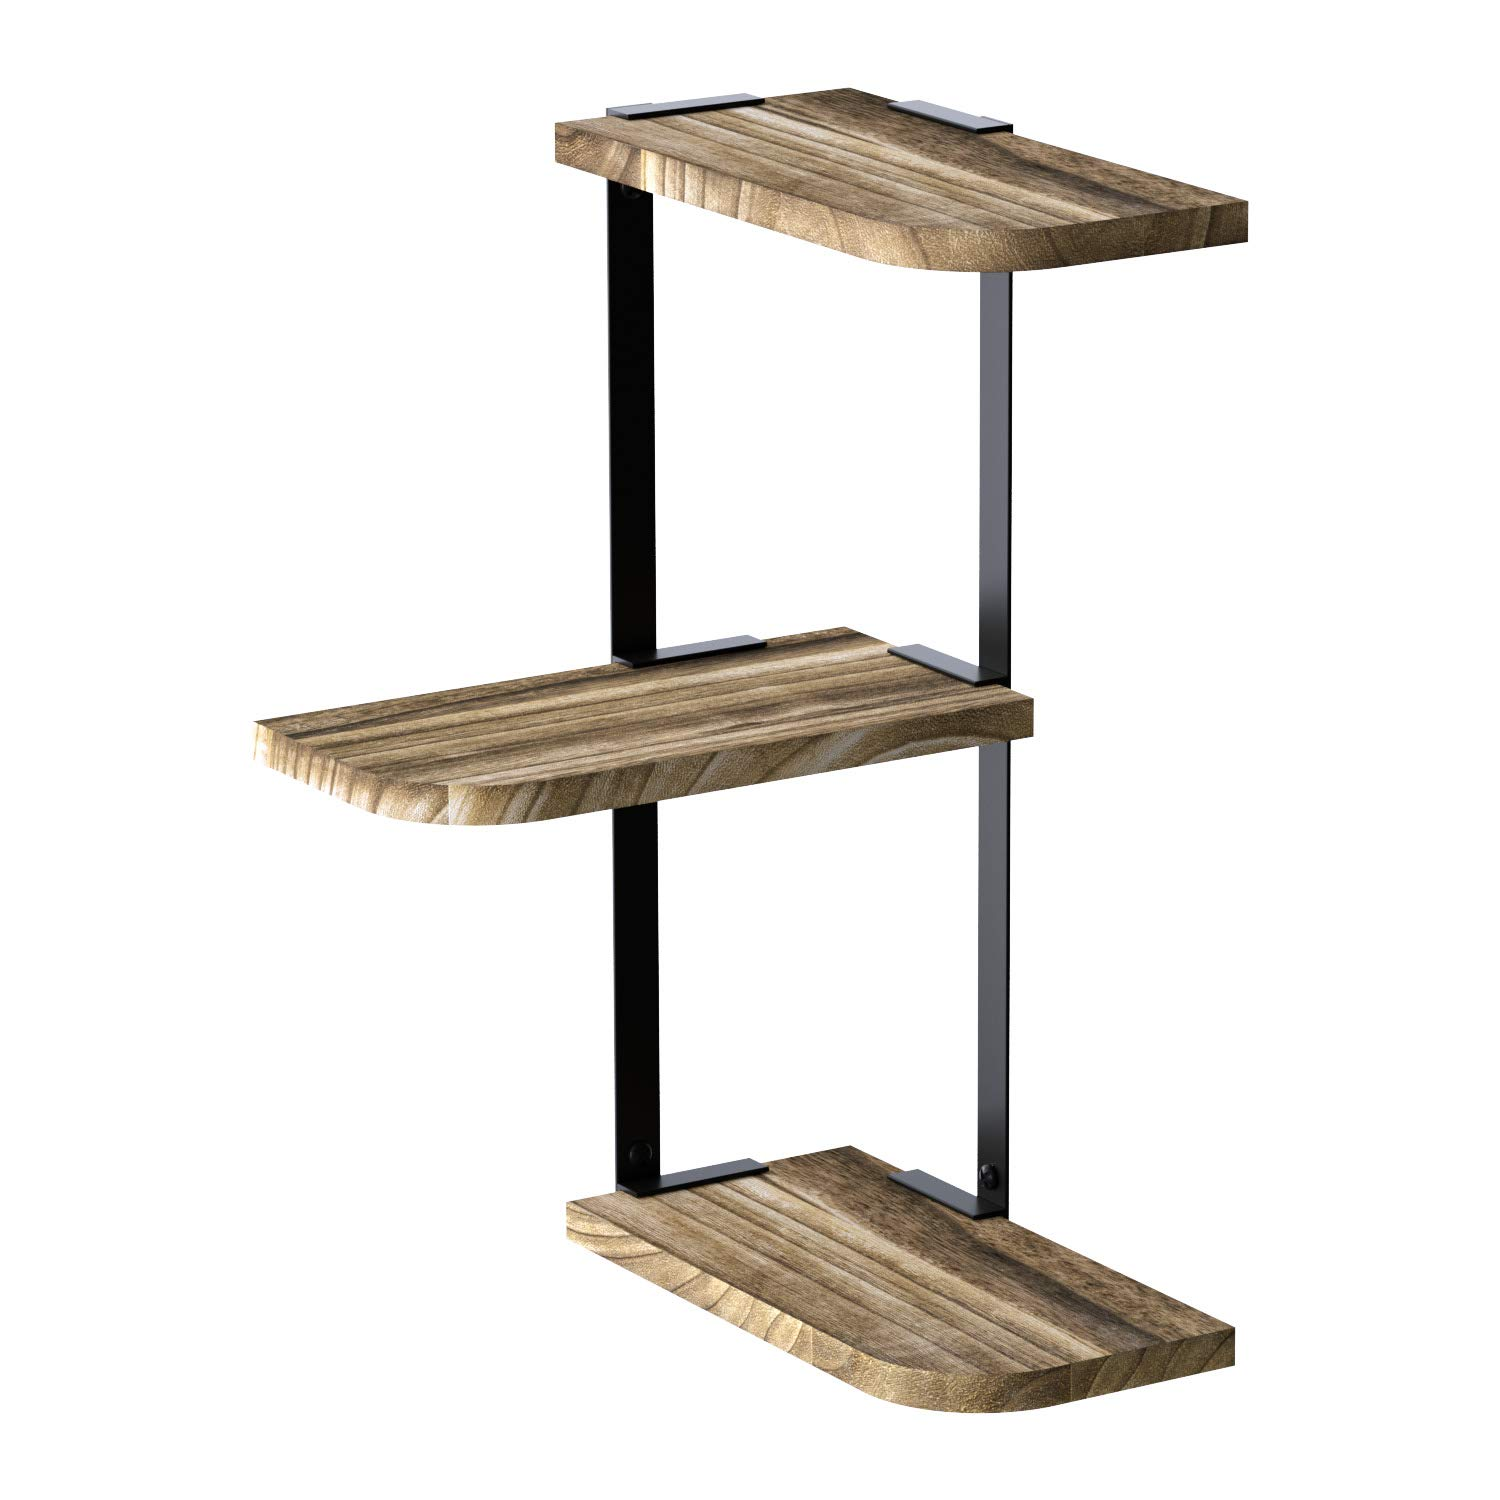 Love-KANKEI Corner Shelf Wall Mount of 3 Tier Rustic Wood Floating Shelves for Bedroom Living Room Bathroom Kitchen Office and More Carbonized Black by Love-KANKEI